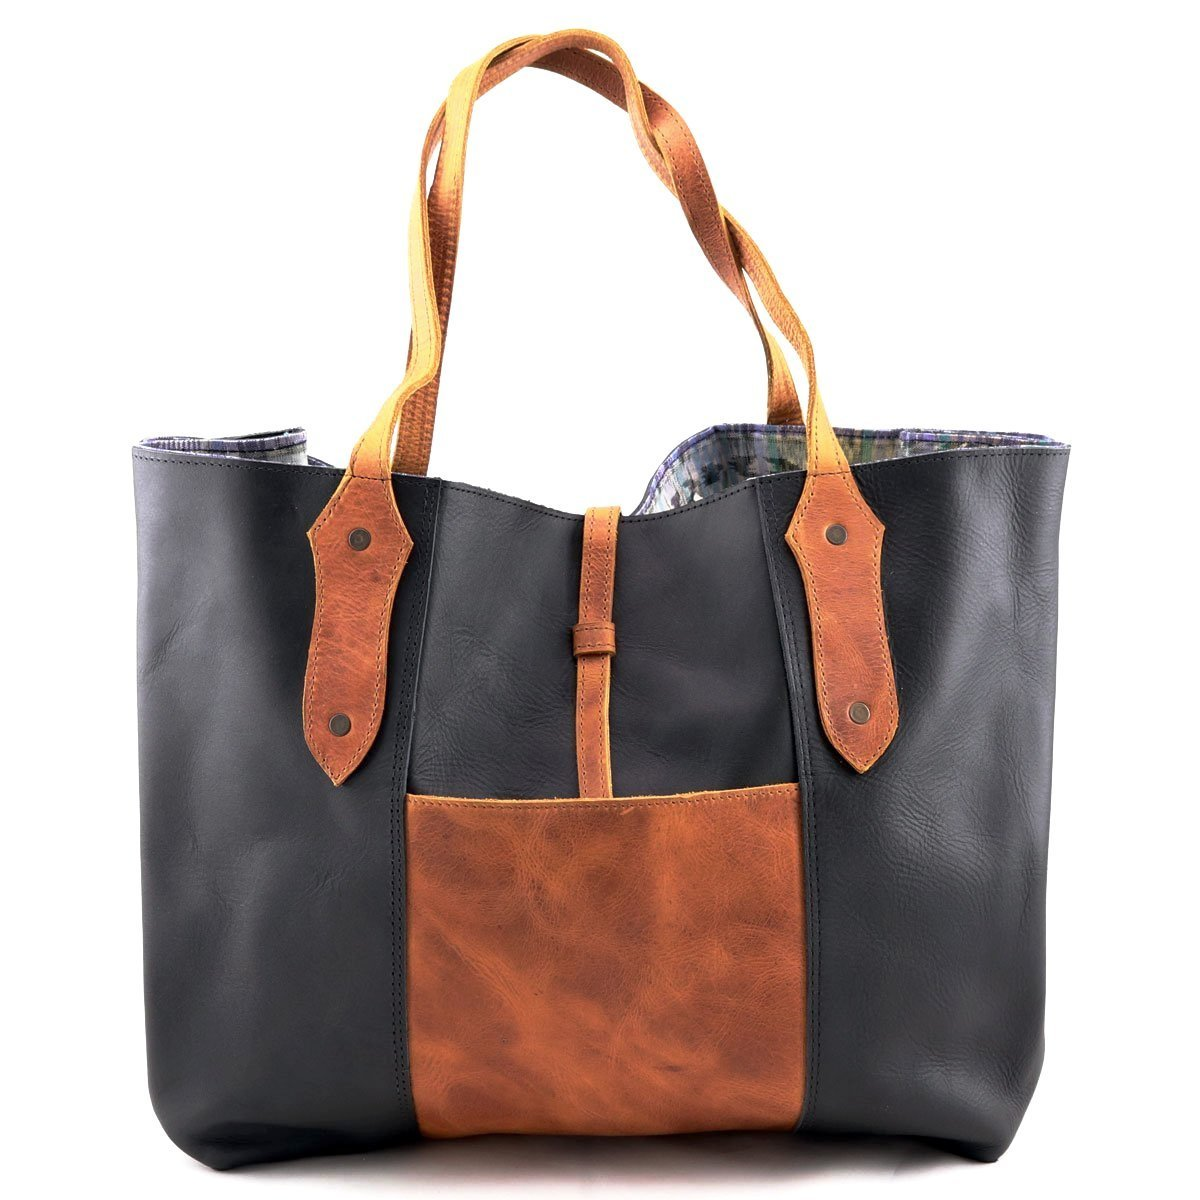 Antigua Leather Tote - etnico culture